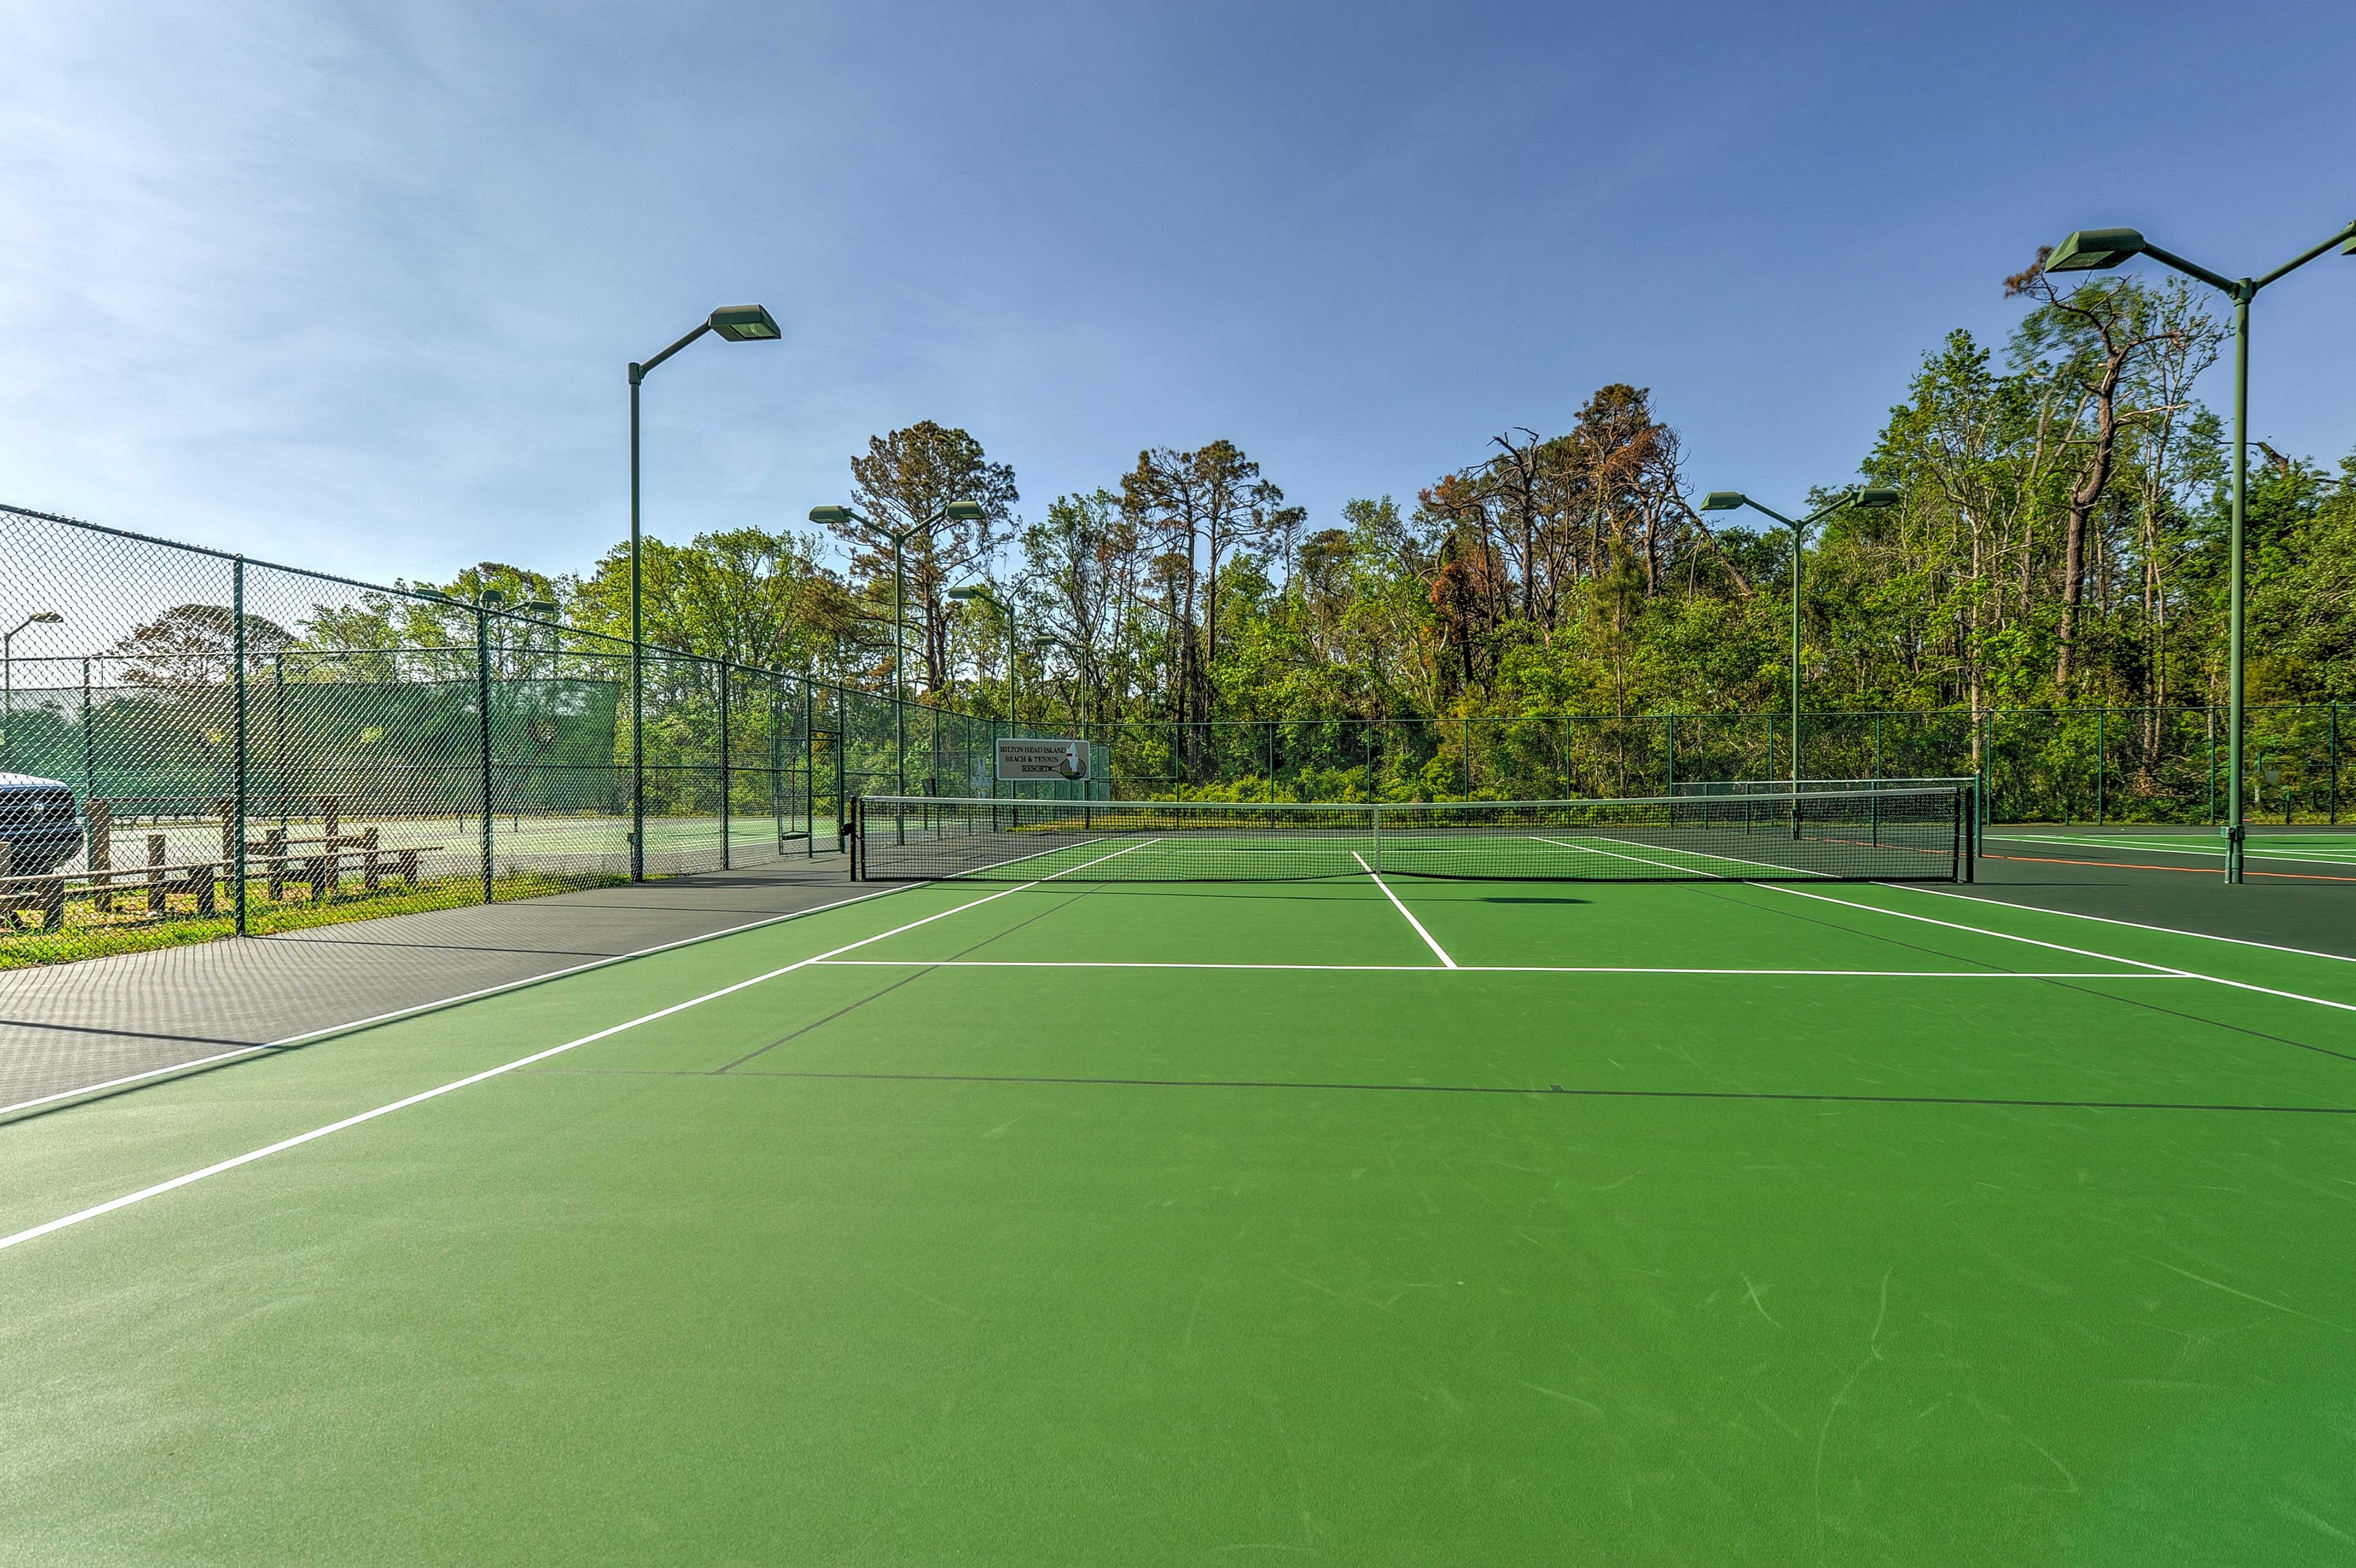 Challenge your travel companions to a tennis match!